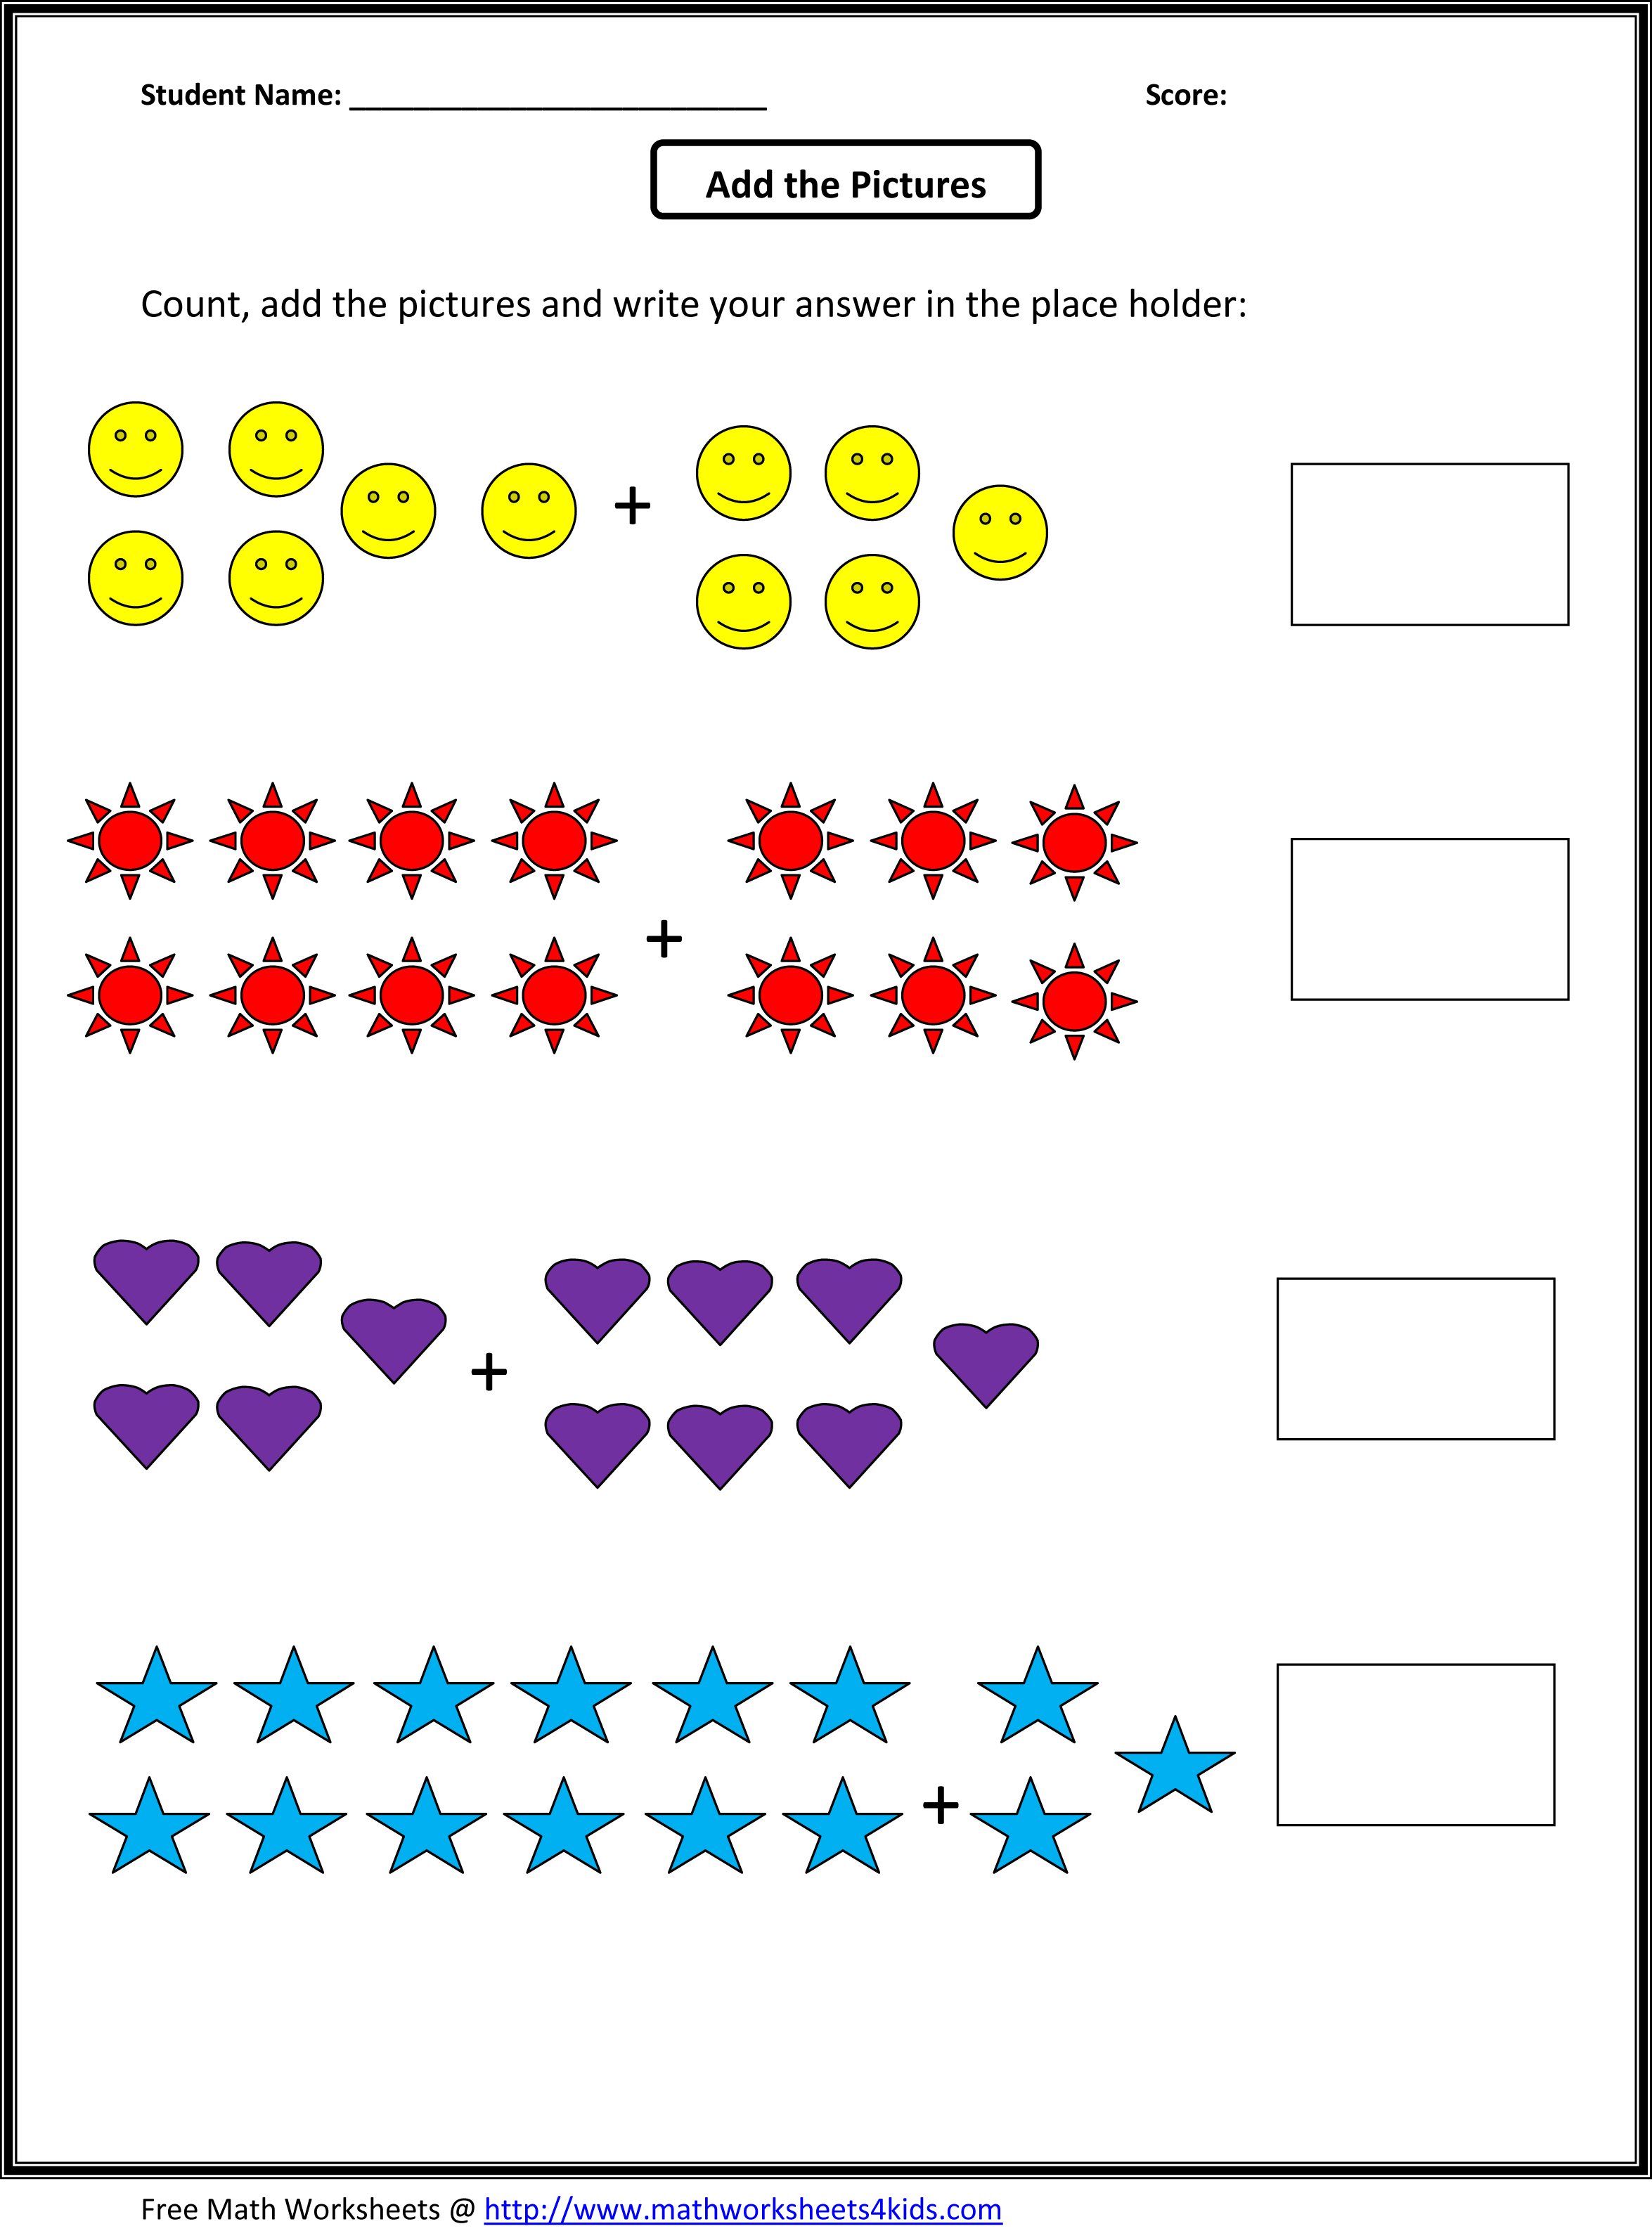 Weirdmailus  Wonderful Grade  Maths Worksheet  Reocurent With Heavenly Math Worksheets For St Grade Free  Reocurent With Attractive Second Grade Printable Worksheets Also Intermediate Directions Worksheet In Addition Brain Teaser Worksheet And Lewis And Clark Worksheets As Well As Identifying Minerals Worksheet Additionally Make A Budget Worksheet From Reocurentcom With Weirdmailus  Heavenly Grade  Maths Worksheet  Reocurent With Attractive Math Worksheets For St Grade Free  Reocurent And Wonderful Second Grade Printable Worksheets Also Intermediate Directions Worksheet In Addition Brain Teaser Worksheet From Reocurentcom